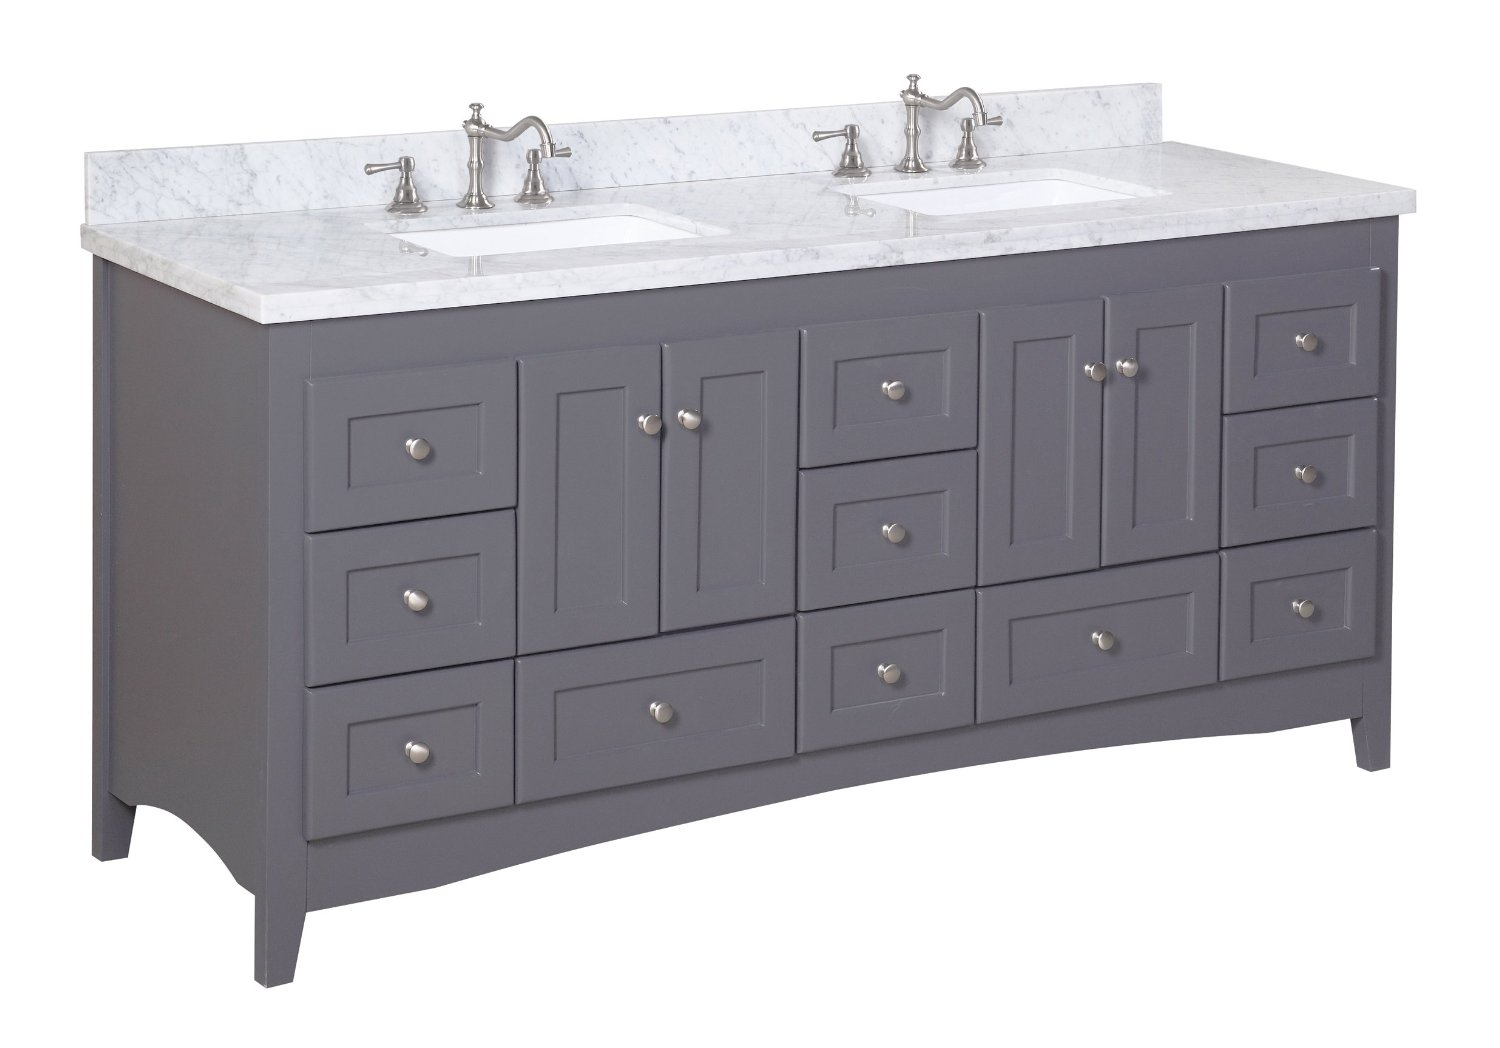 Bathroom Vanity Queens Ny best bathroom vanities, sinks and design ideas | reunited home